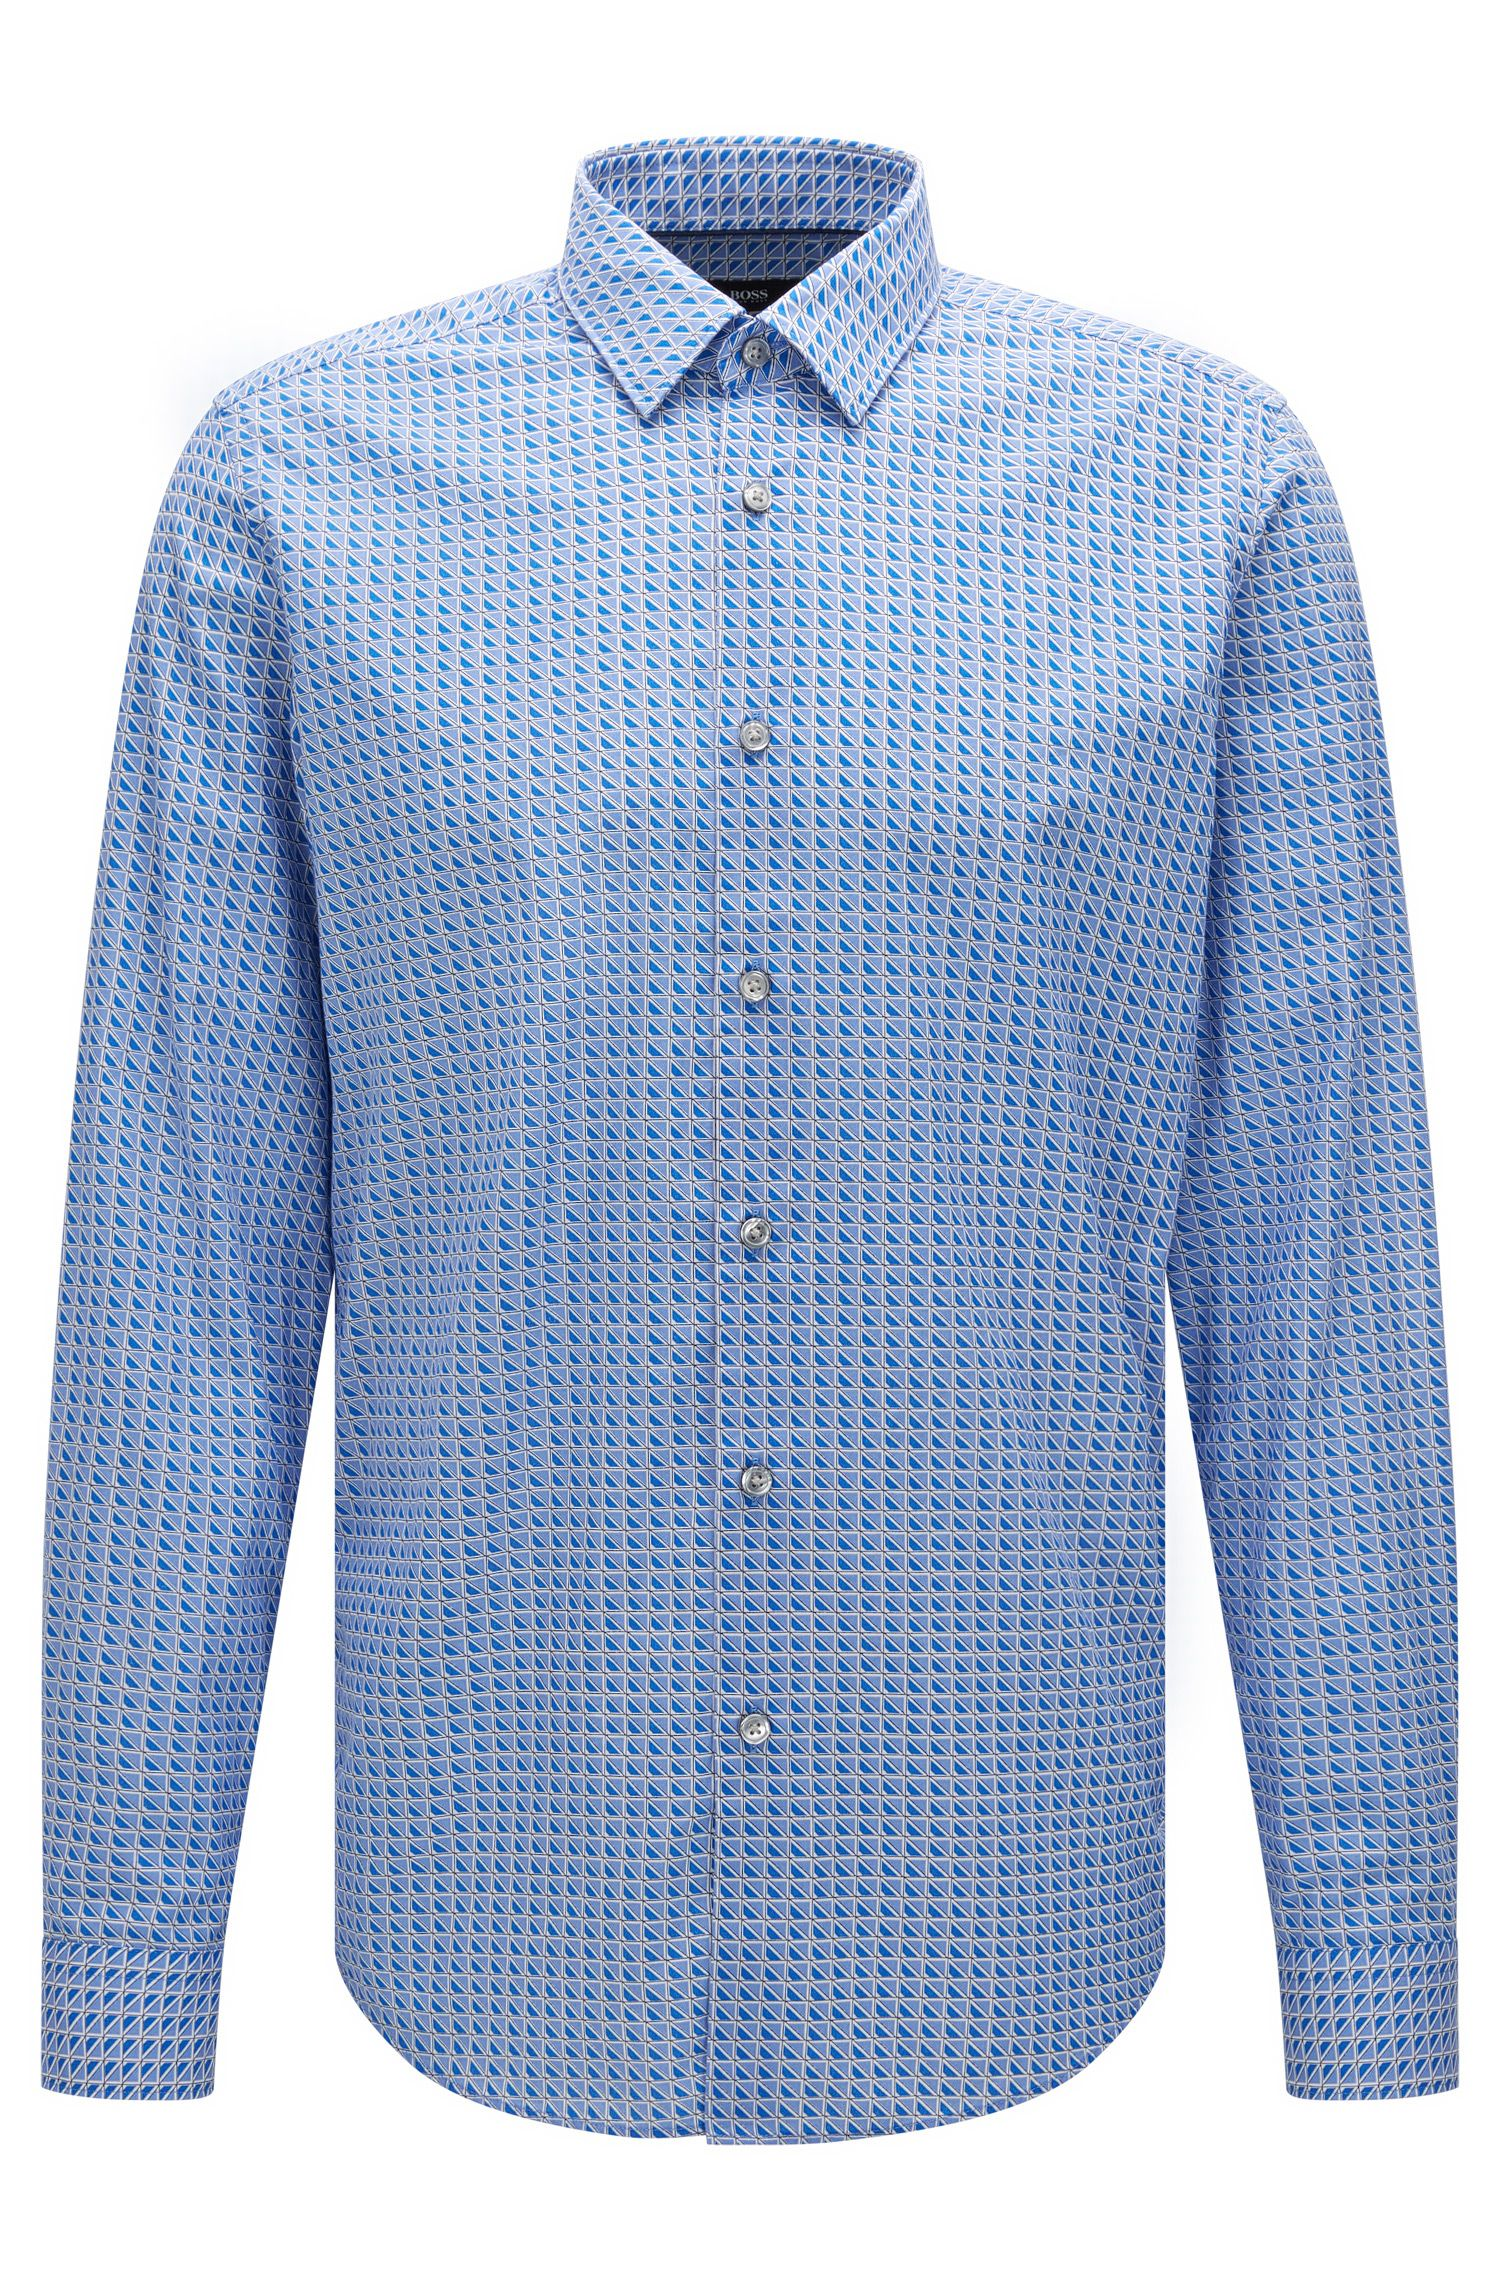 'Lukas F' | Regular Fit, Cotton Button Down Shirt